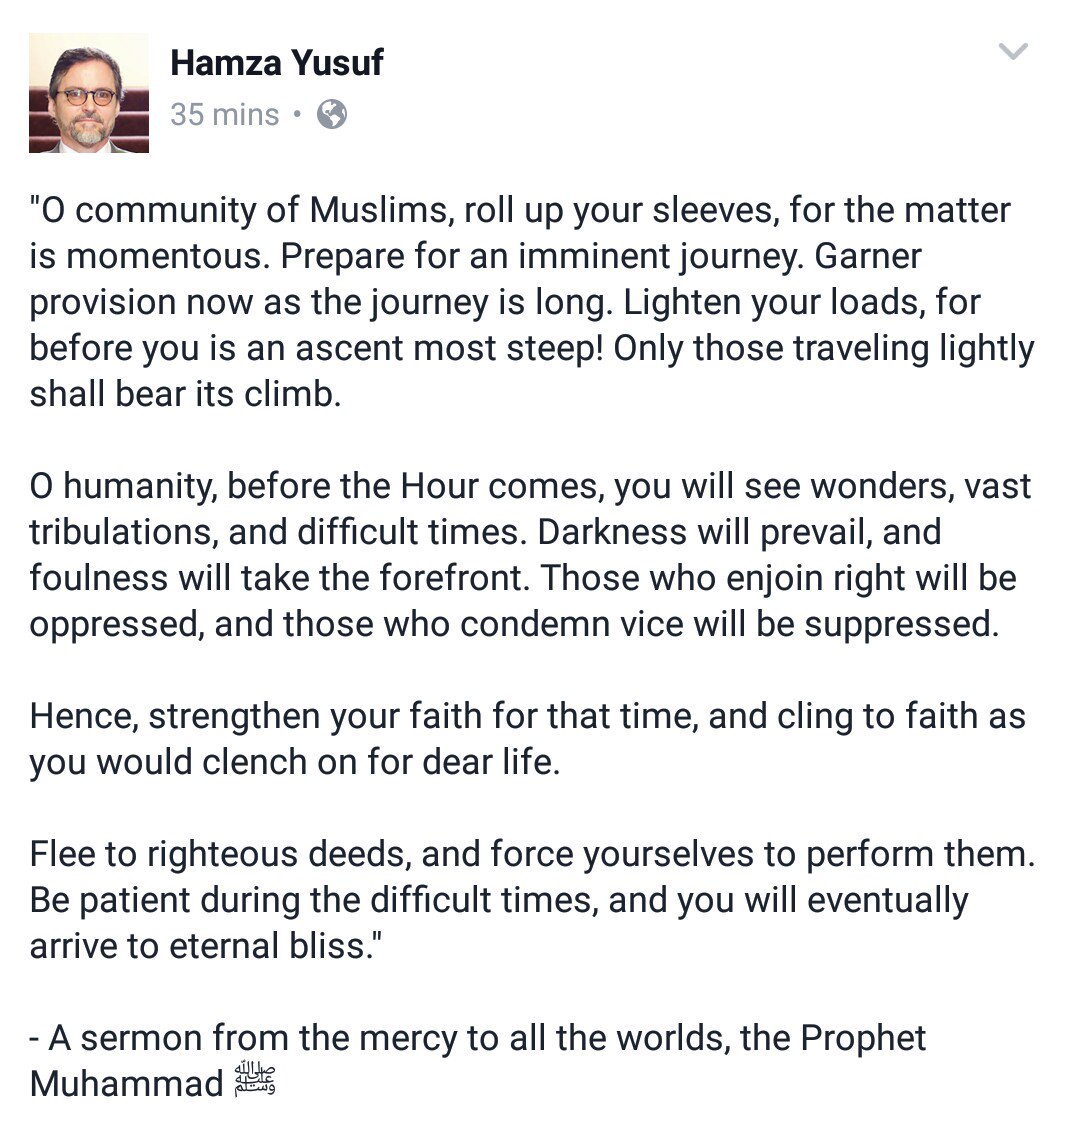 May Allaah protect all Muslims. https://t.co/S5T72FEPOE